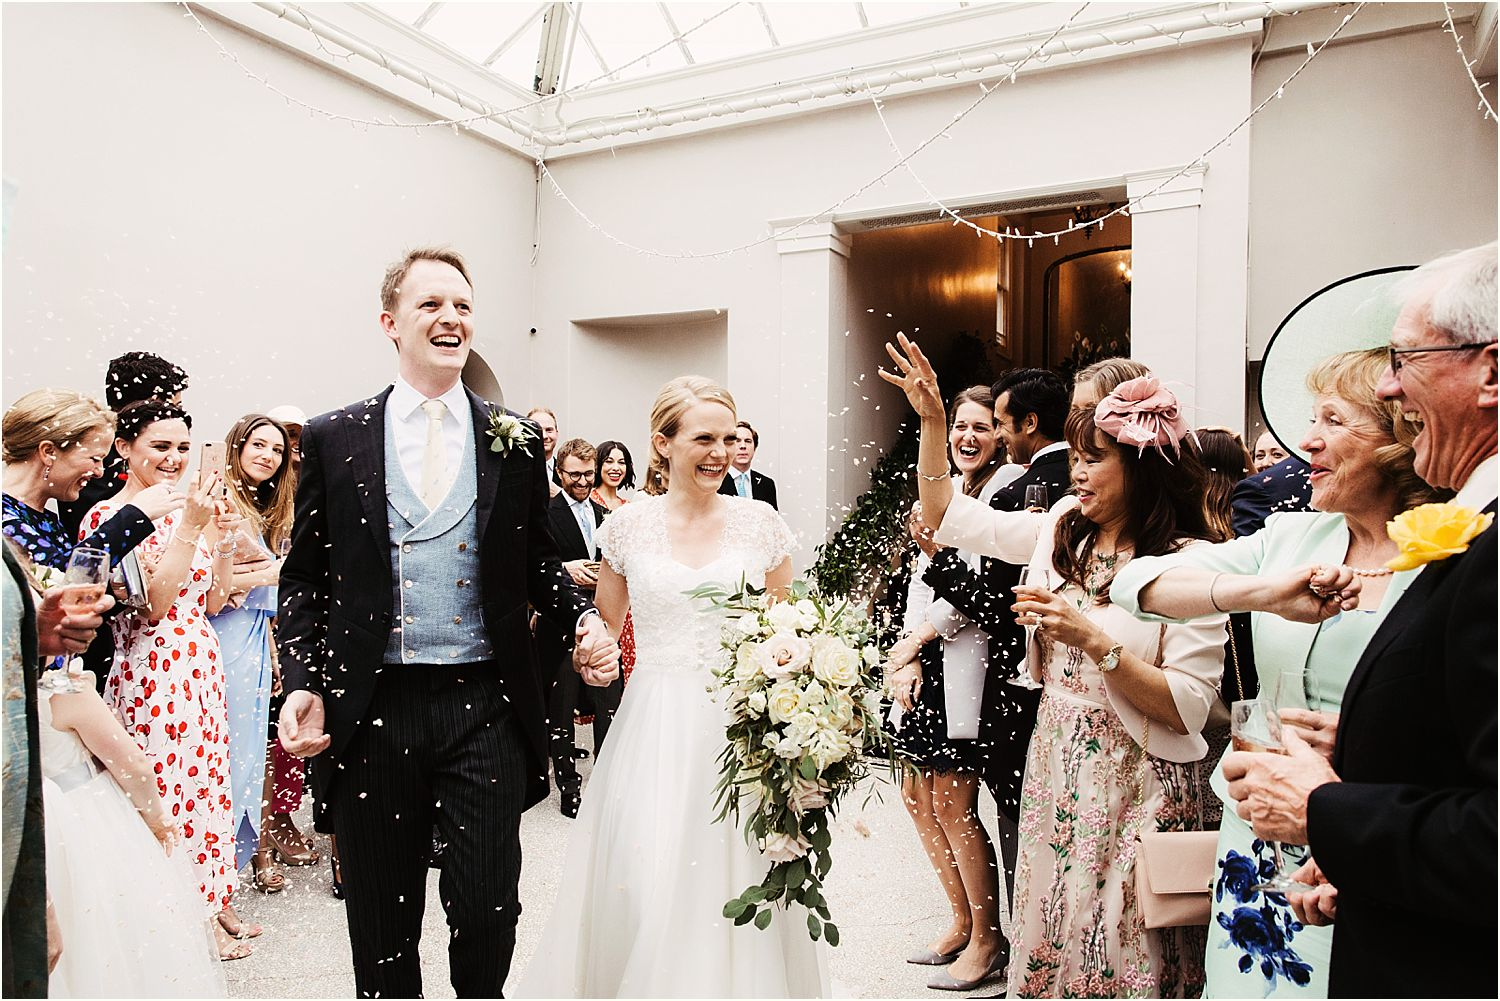 Bride and grrom in confetti showwr at Hampton Court wedding, bride's bouquet by Gabi Burton, The Fine Flowers Company